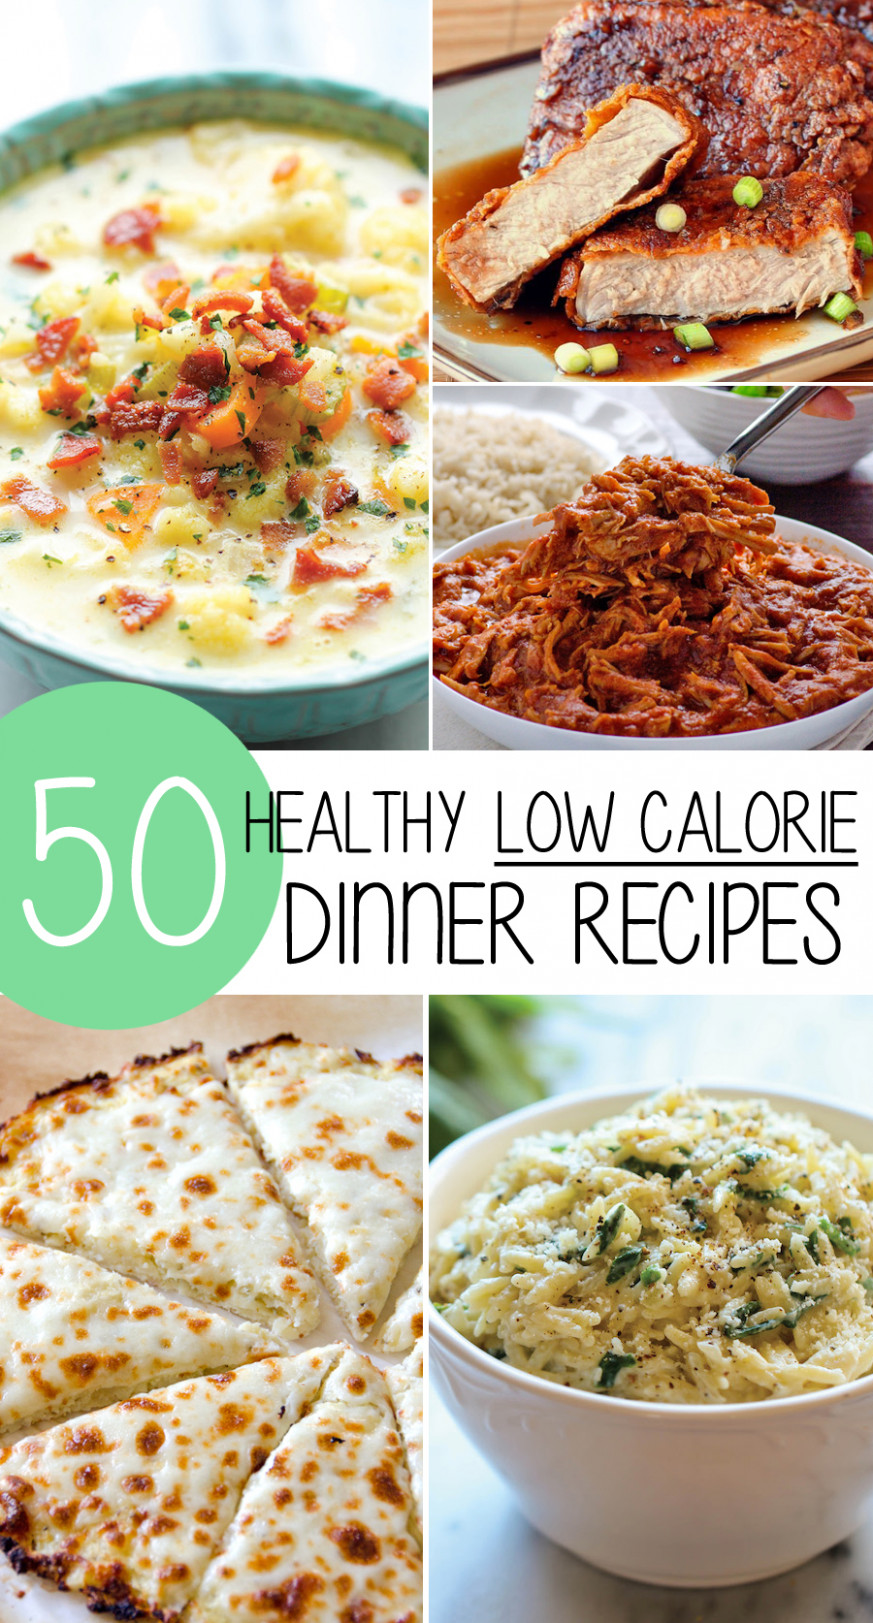 50 Healthy Low Calorie Weight Loss Dinner Recipes ..